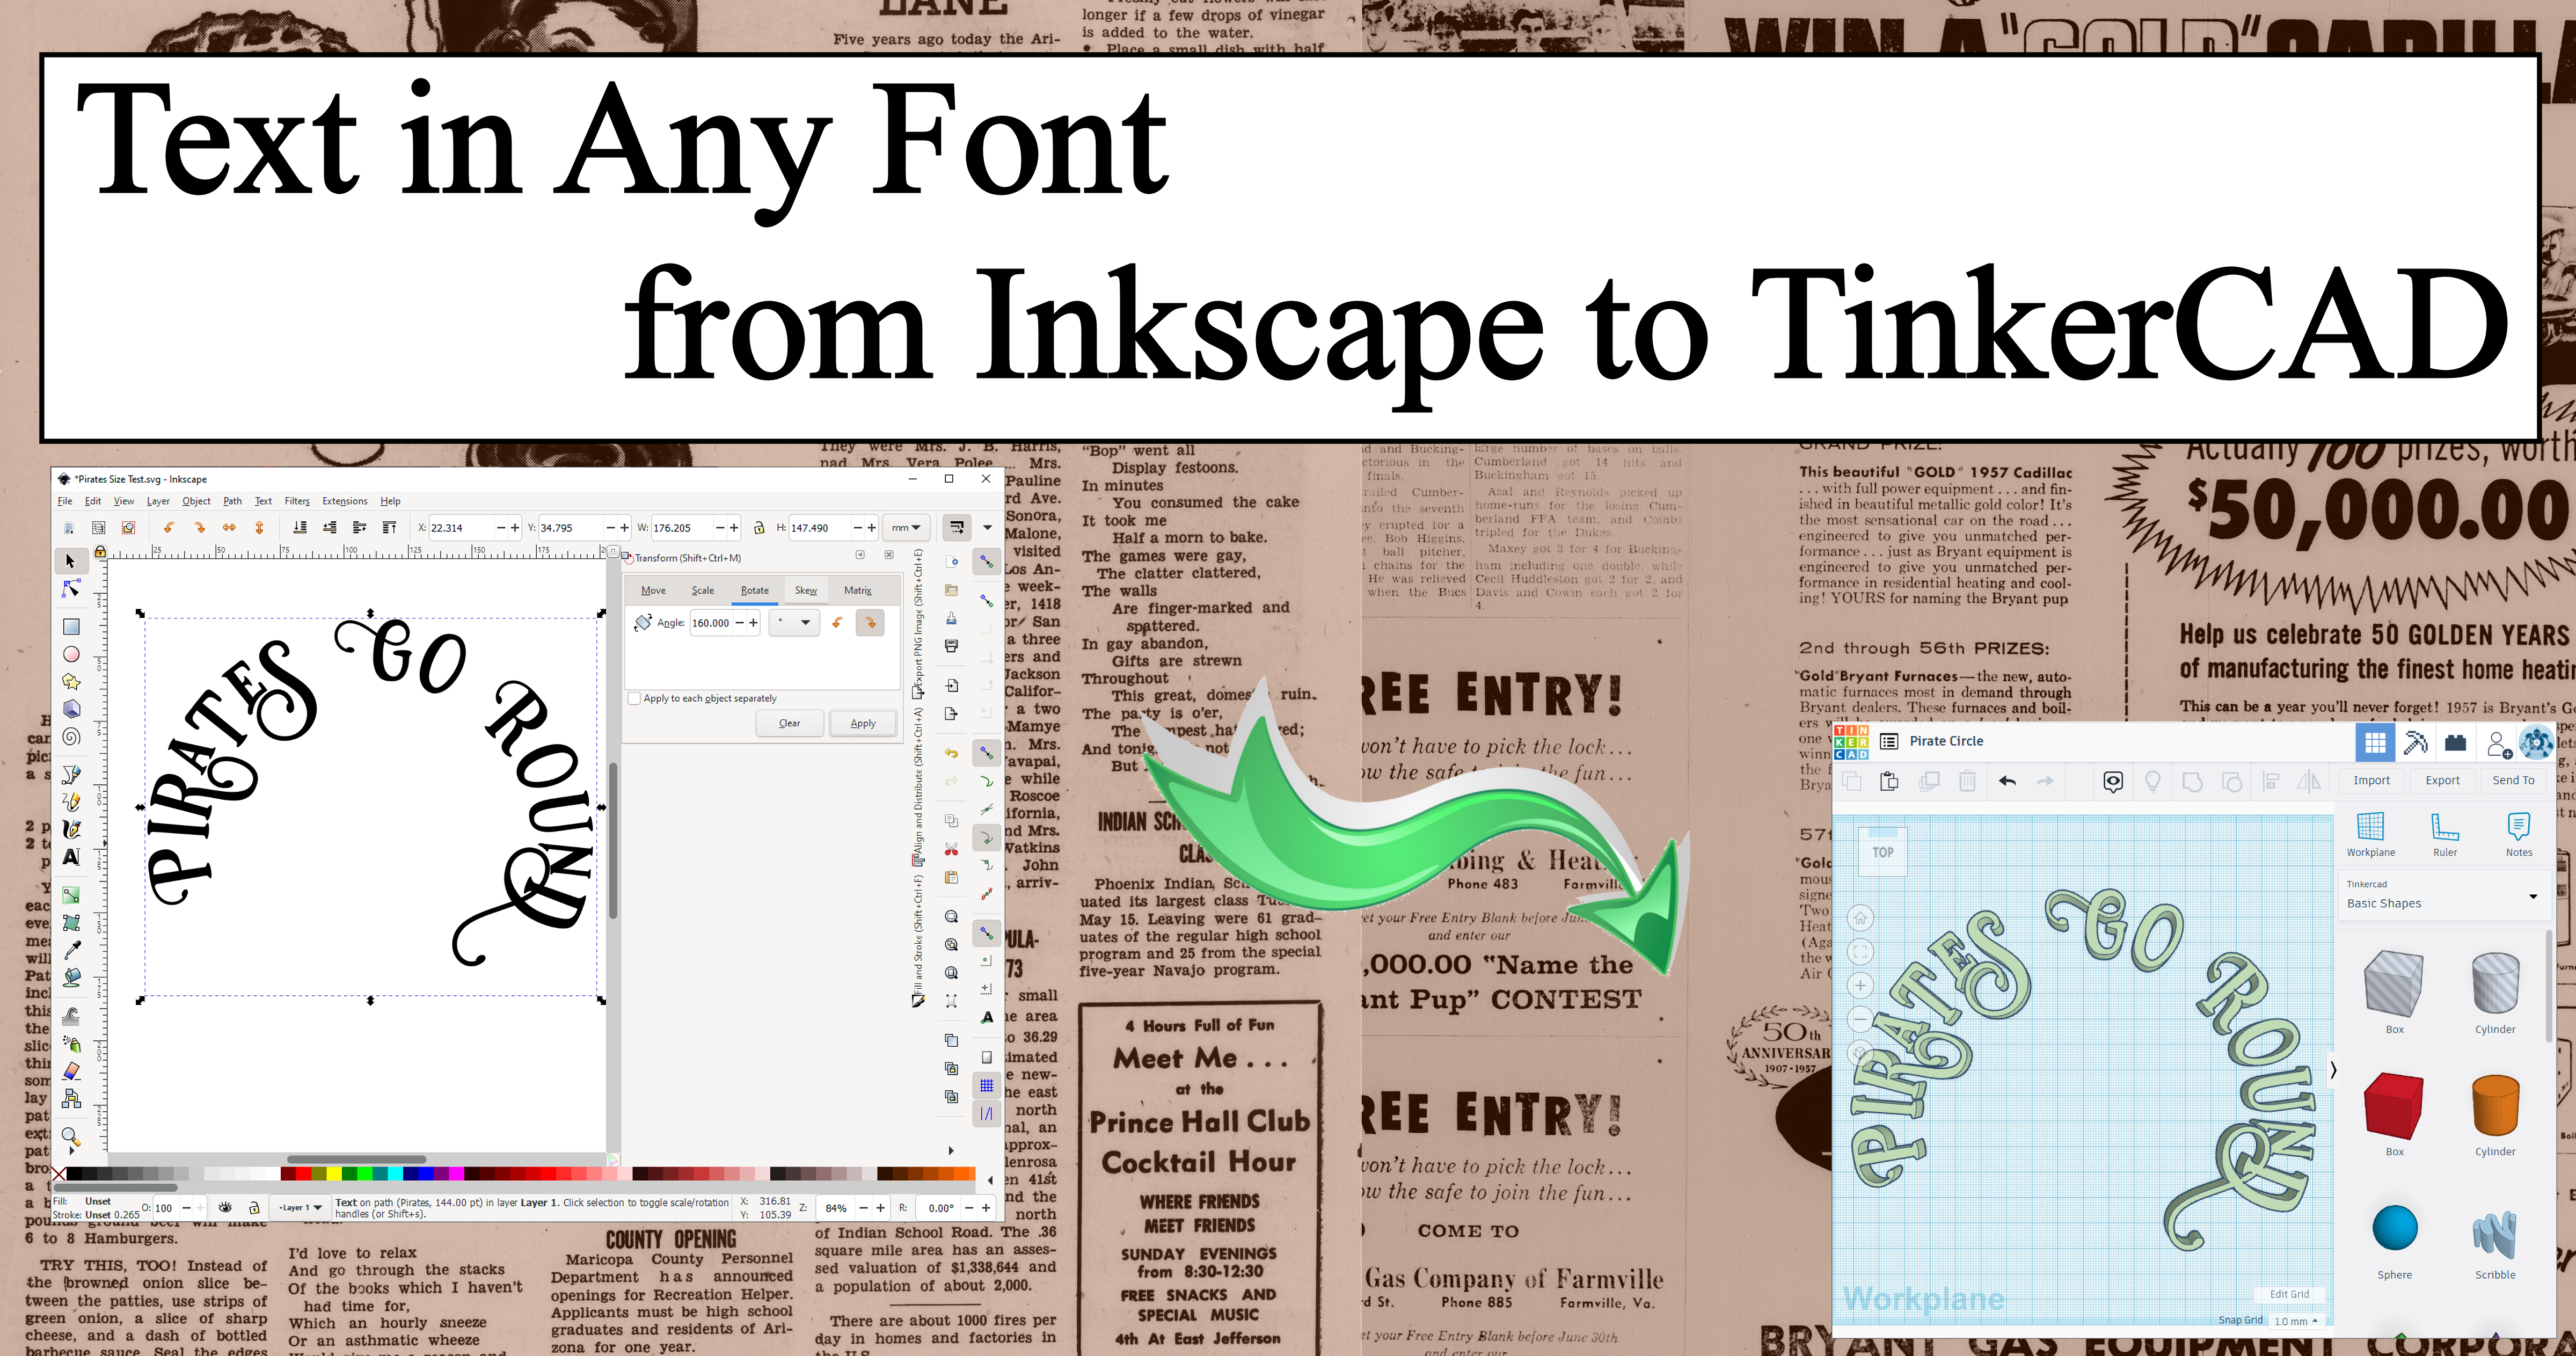 Text in Any Font from Inkscape to TinkerCAD